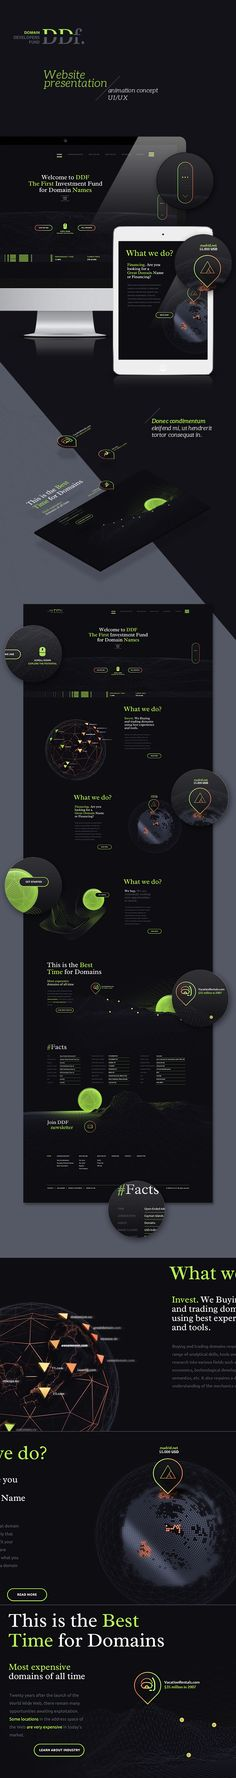 Domain Developers Fund dark version concept by Elastika, via Behance